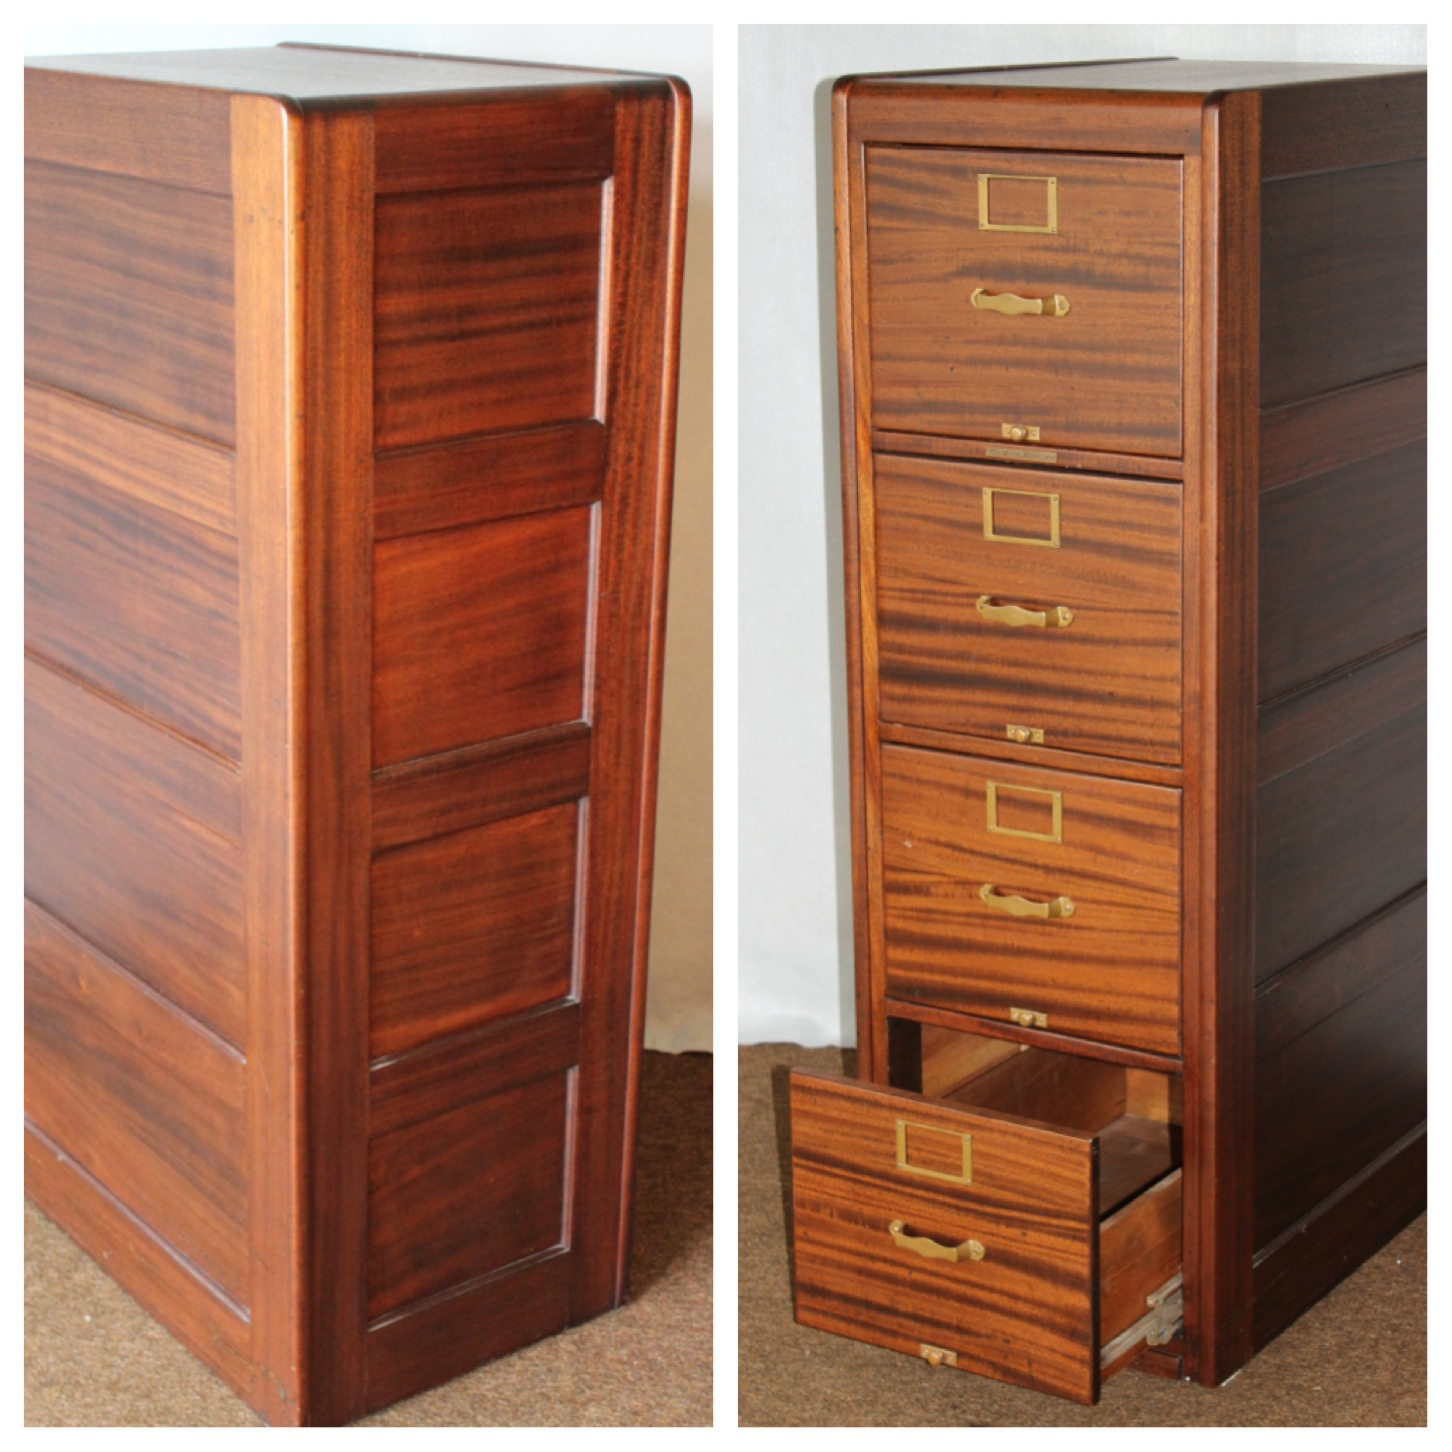 #F3134 File Cabinet - Antique Filing Cabinet - Home Design Ideas And Pictures